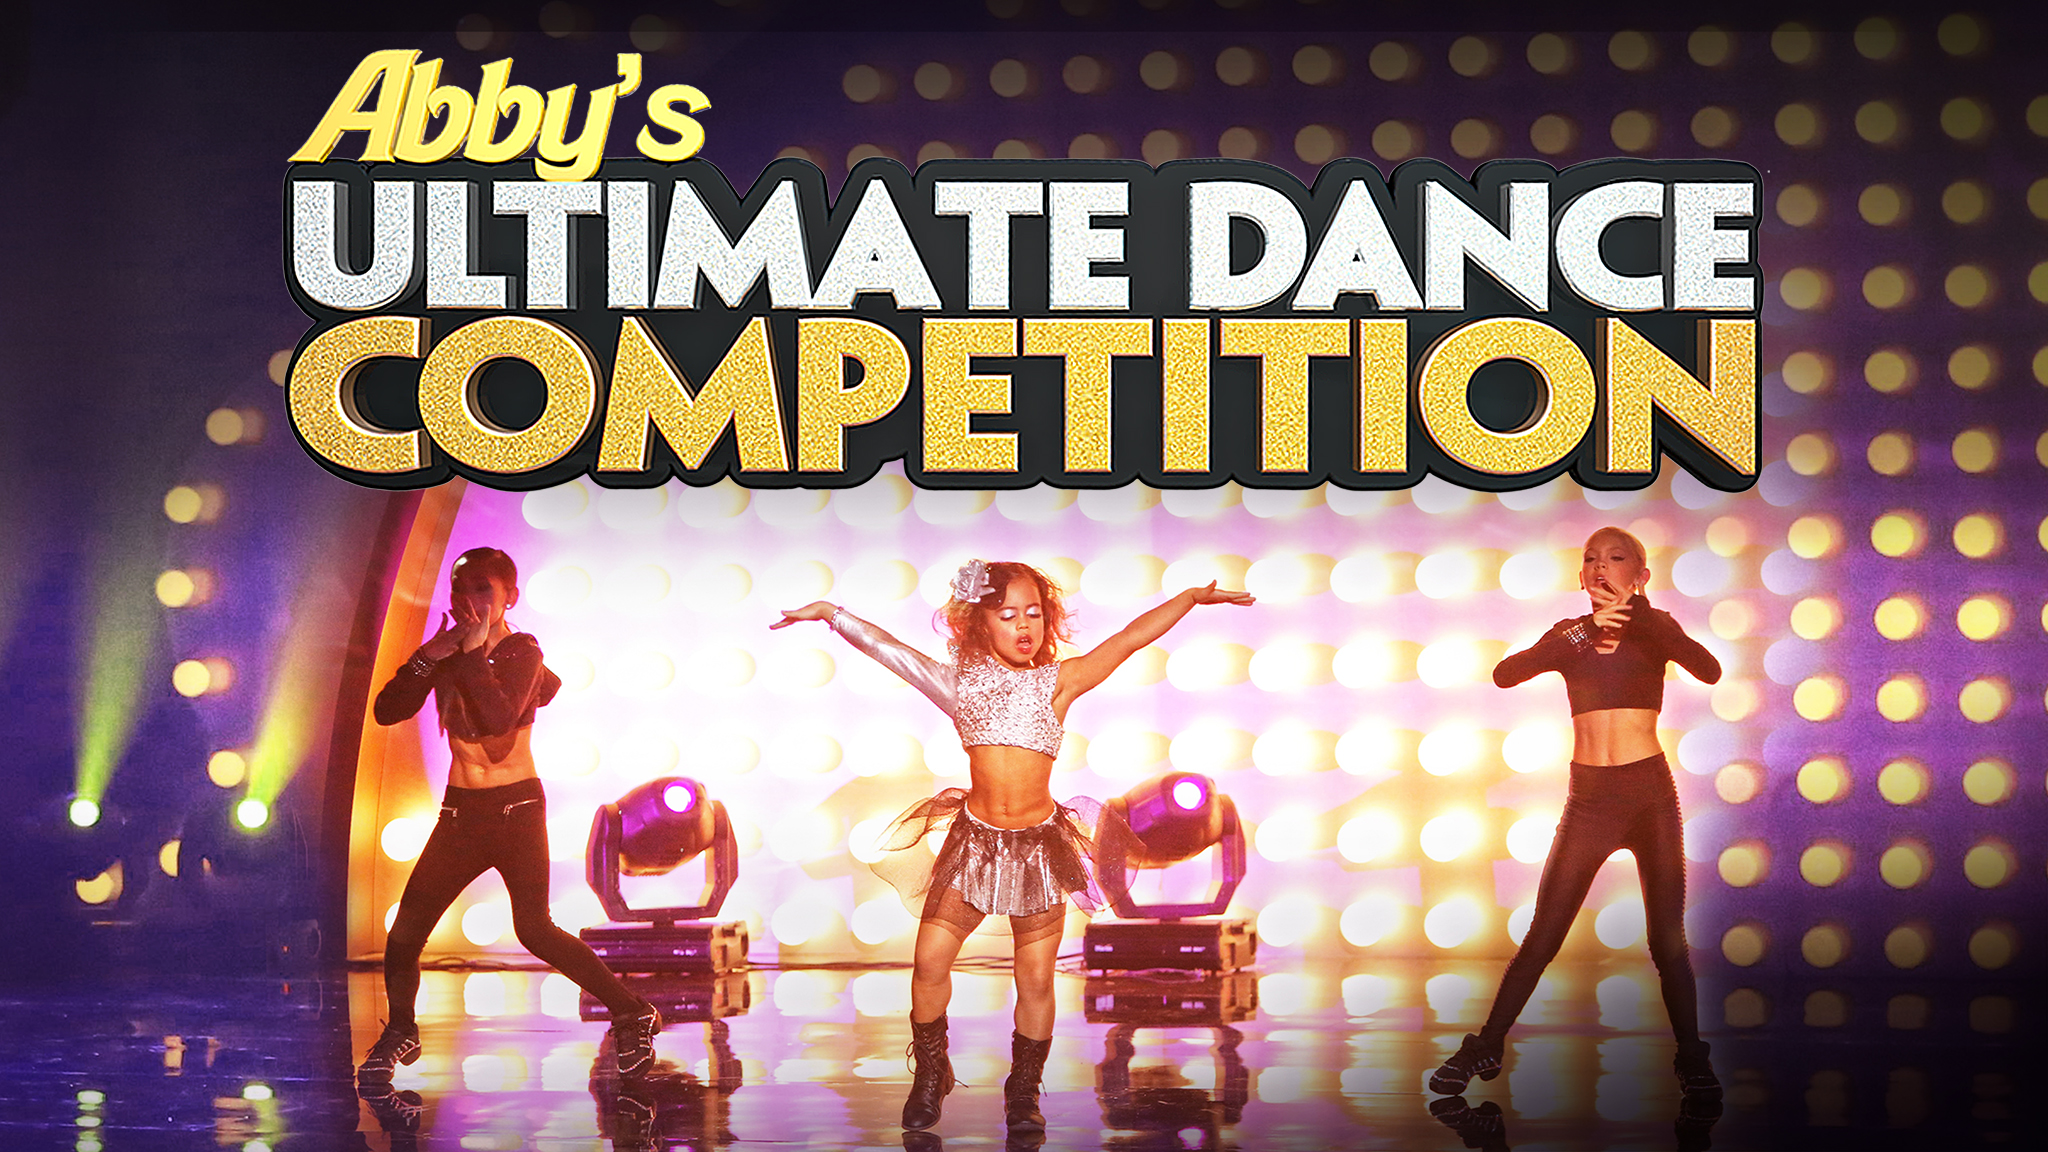 Abby's Ultimate Dance Competition Alt Image